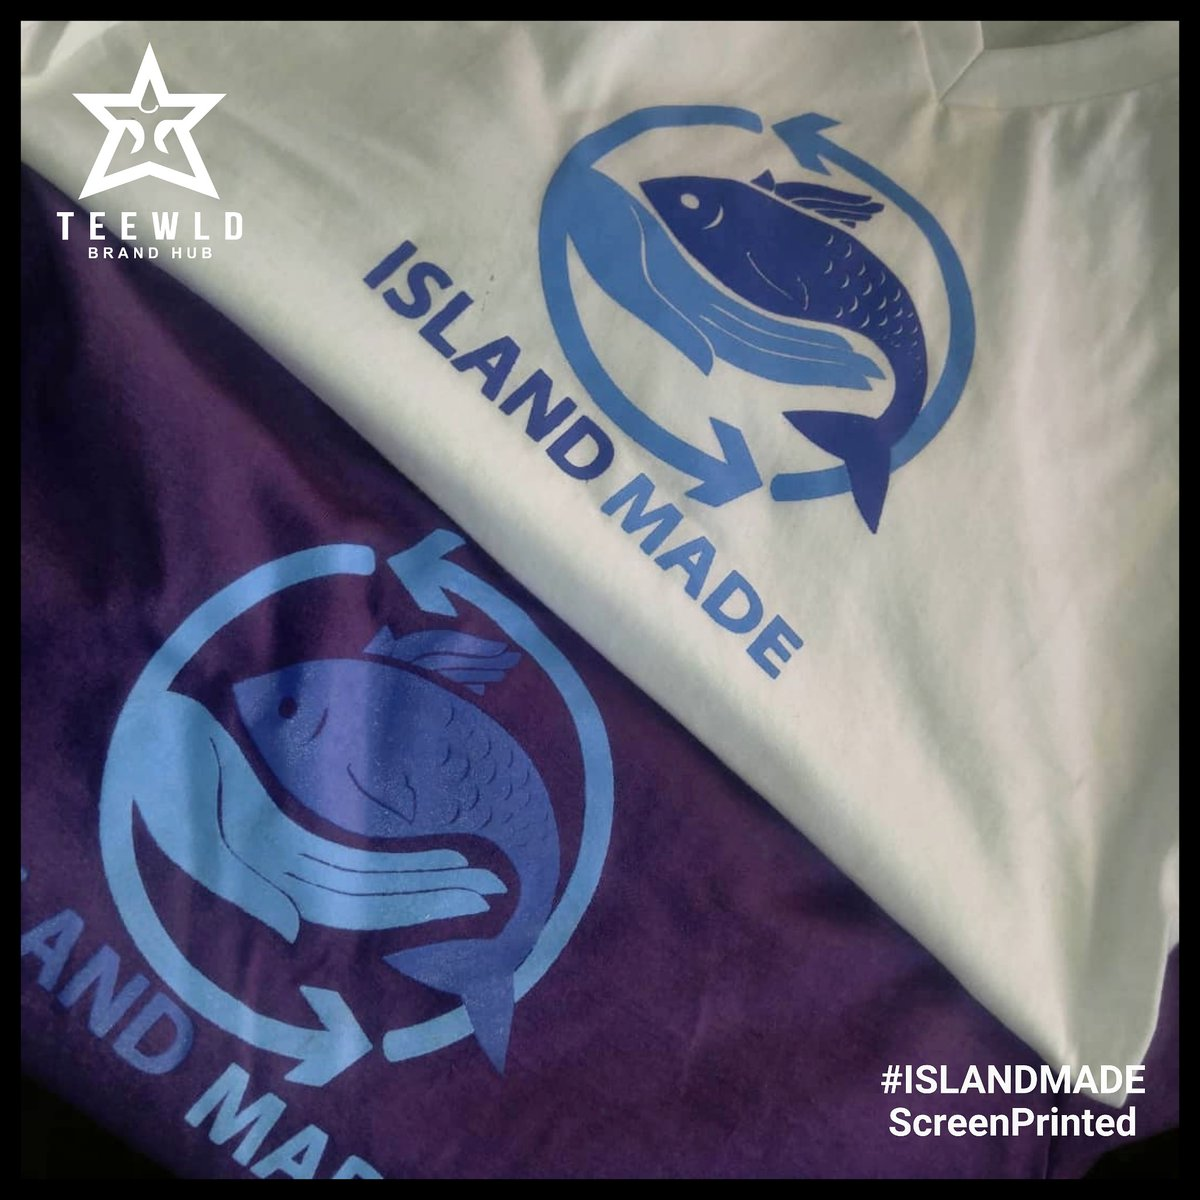 We made it 😎 #ISLANDMADE 🌴  Call: +256759049848 for orders  #islandtees #islandmade #islandvibes #islandparadise #islandlove #cooltees #tshirtprinting #grabyourtshirttoday #screenprinting